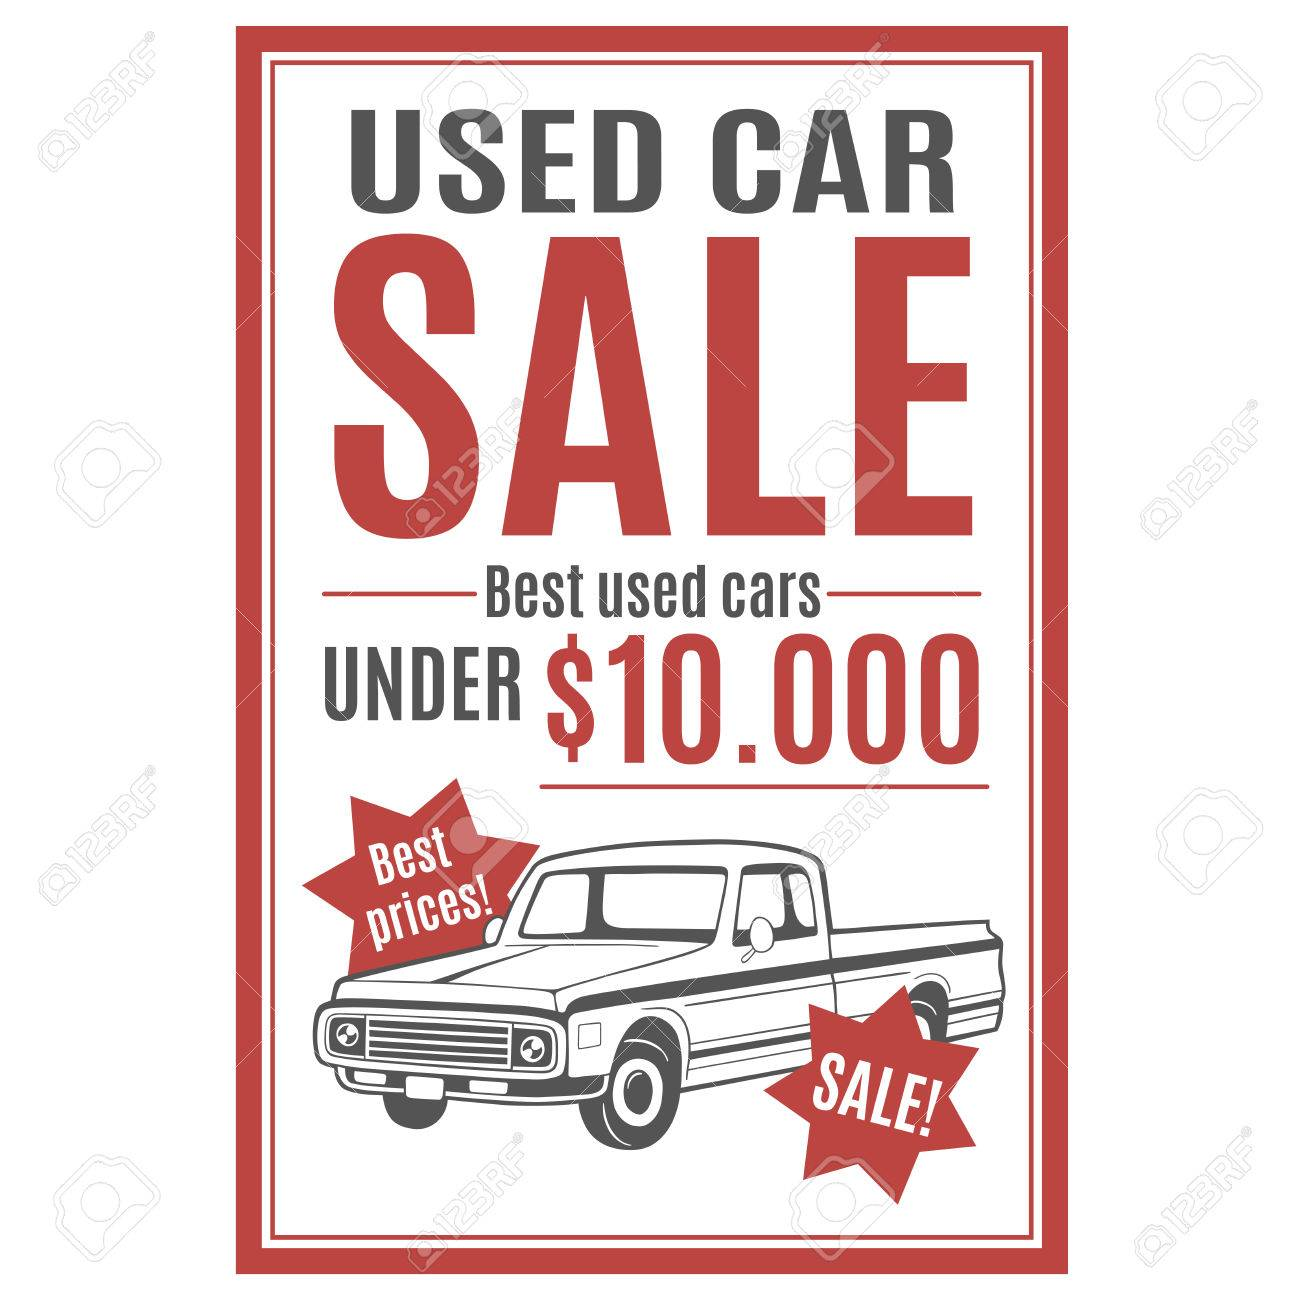 Printable Car For Sale Sign Template - Oloschurchtp.com